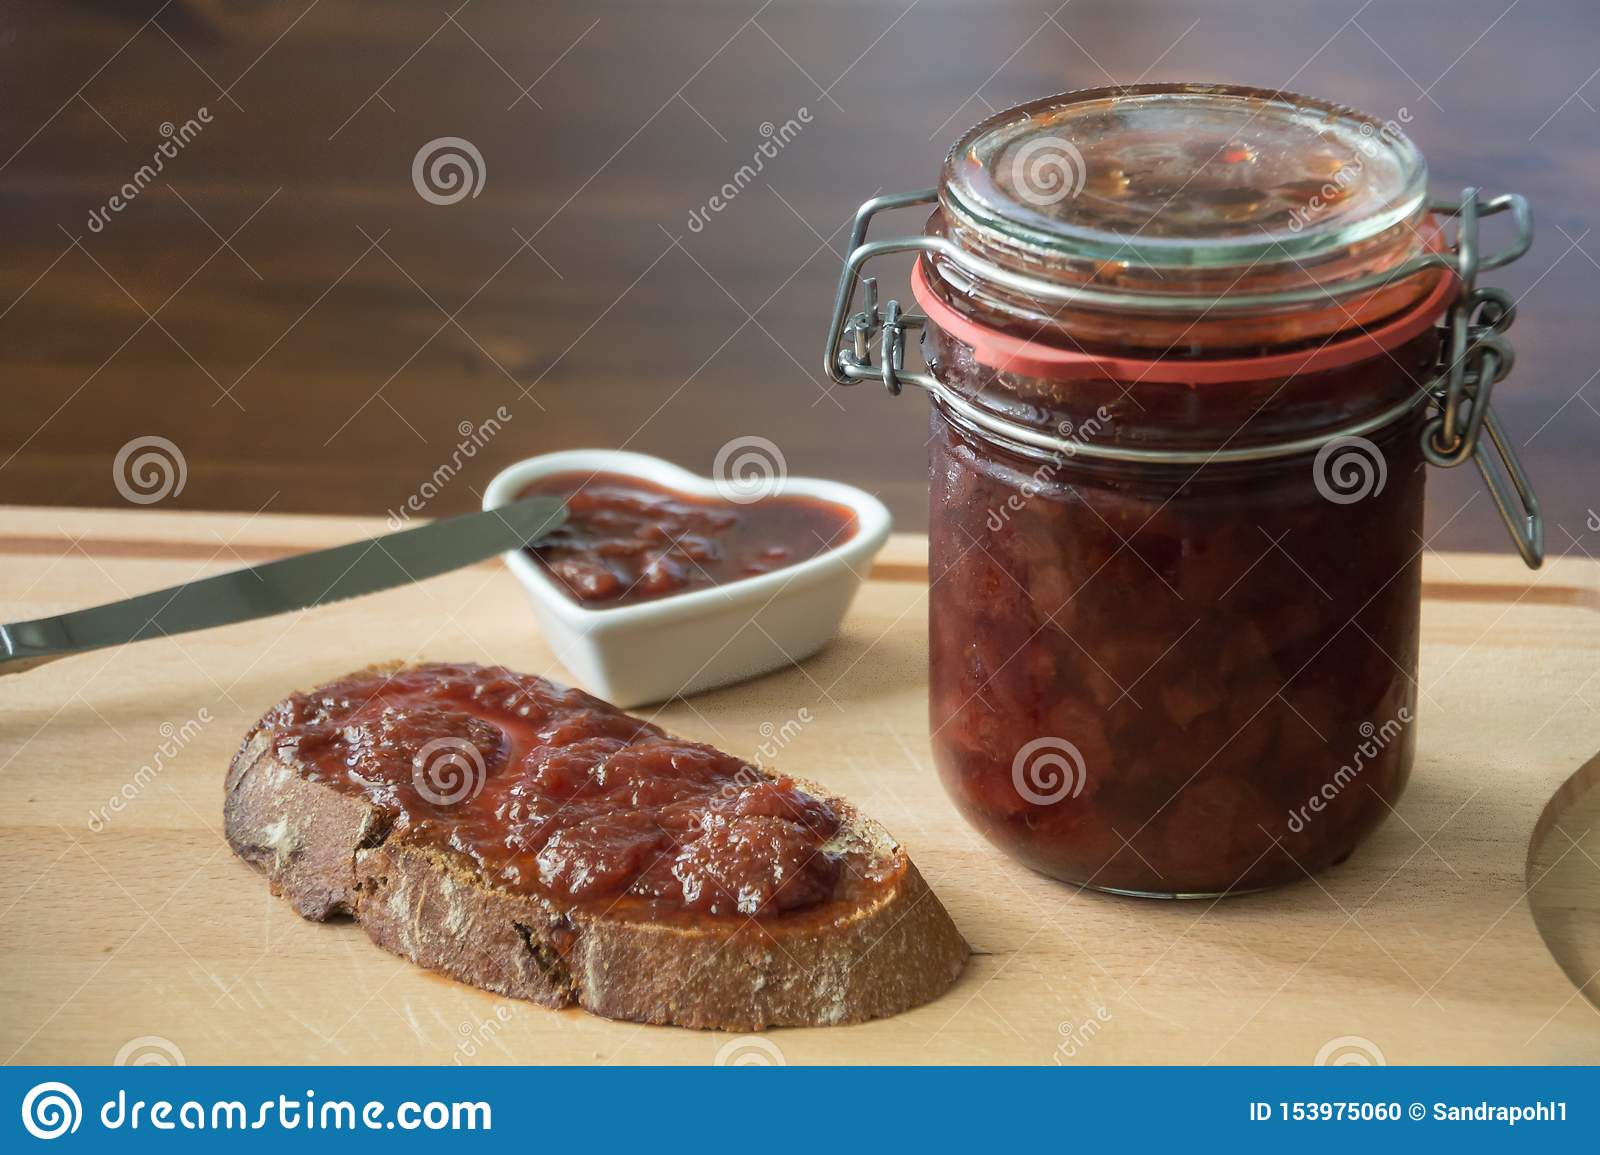 Homemade jam with bread and a knife